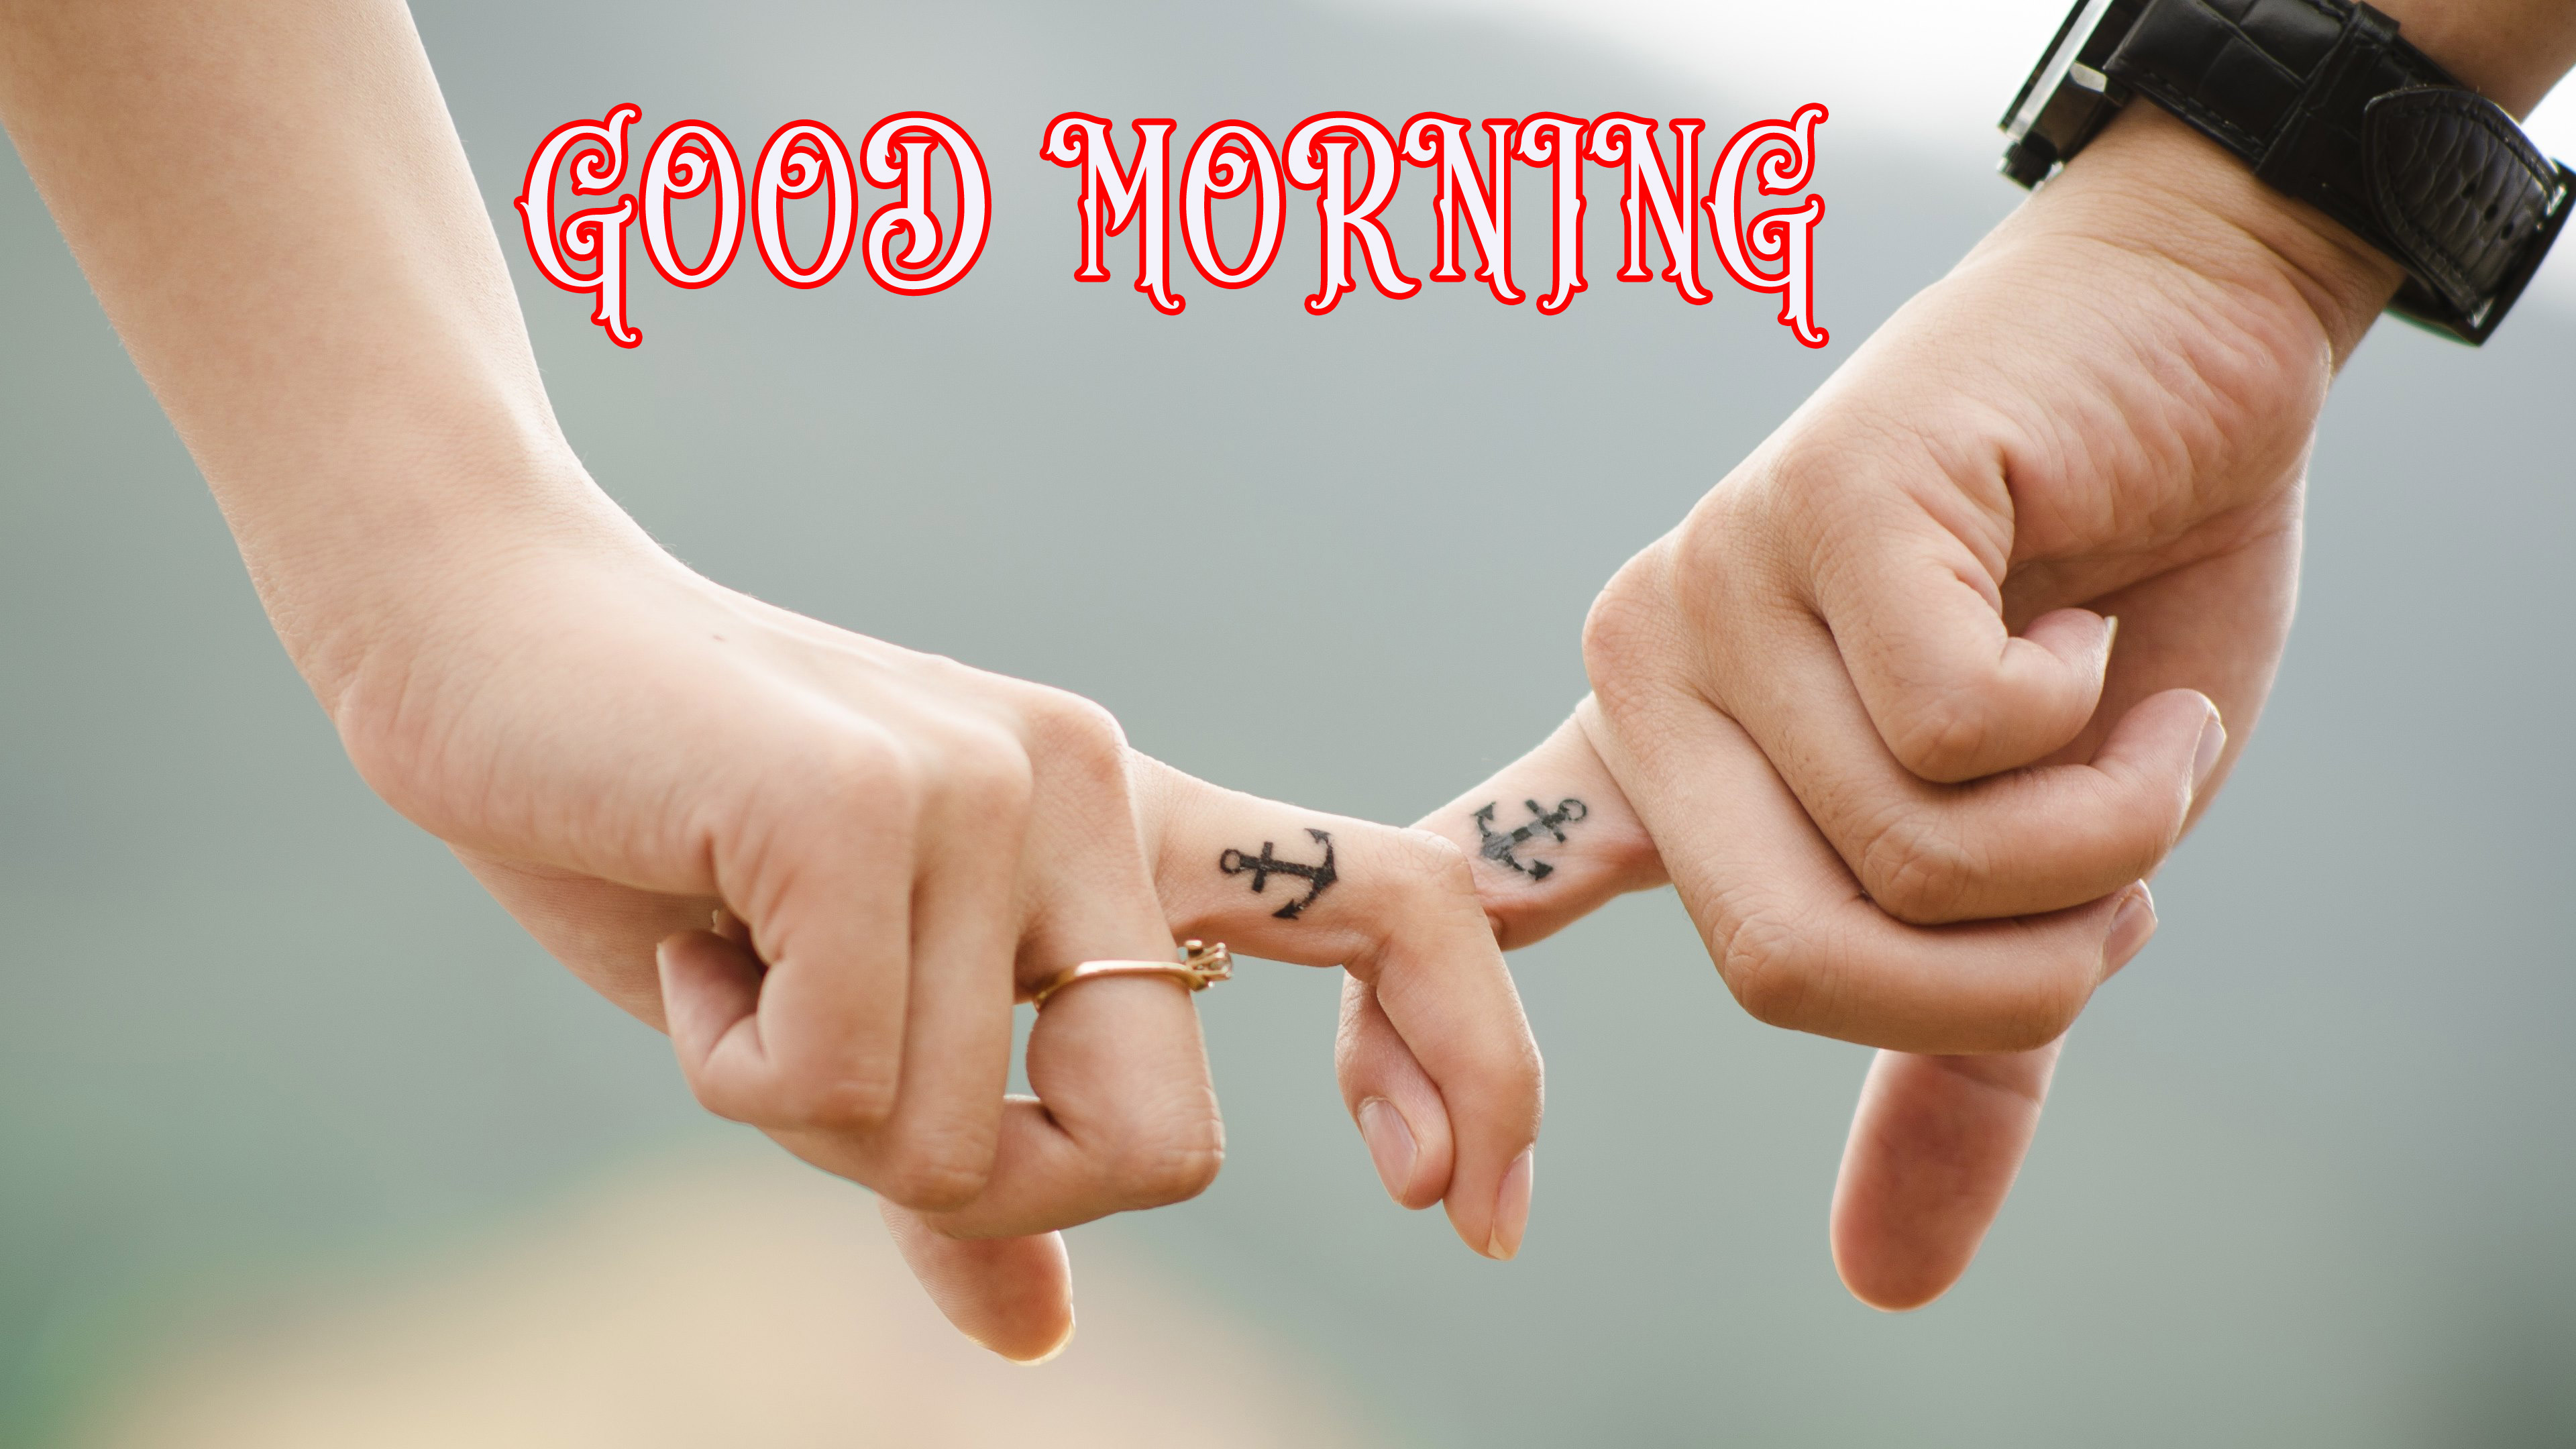 New Lover Good Morning Images Wallpaper pics Download With Girlfriend